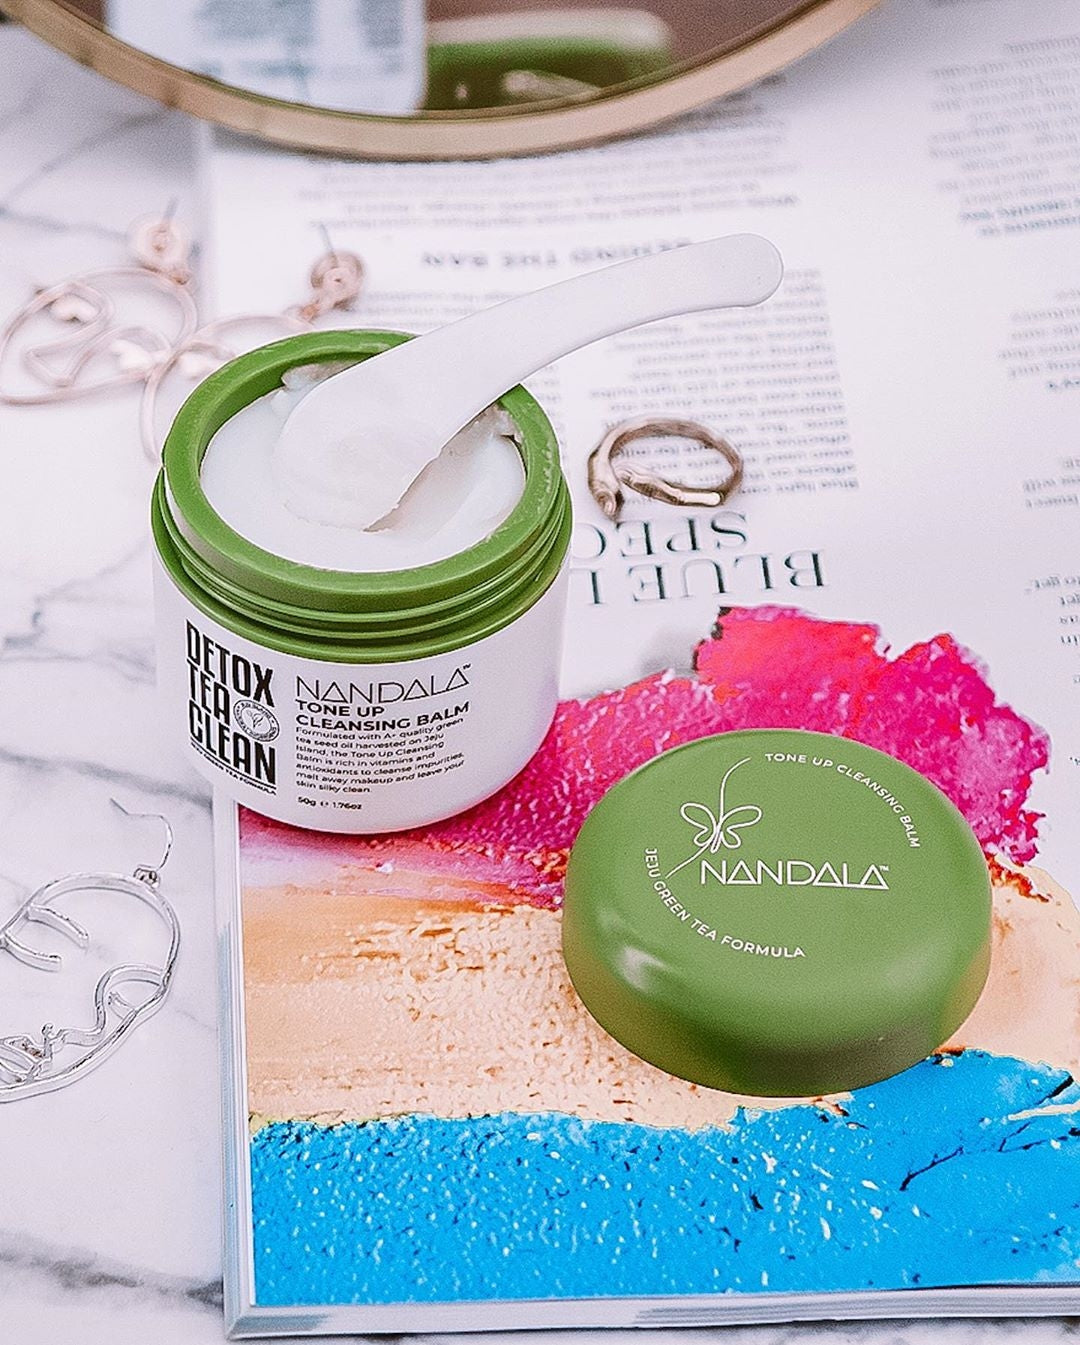 NANDALA Tone Up Cleansing Balm is a easy, on-the-go, nourishing cleansing balm infused with green tea seed oil from Jeju Island